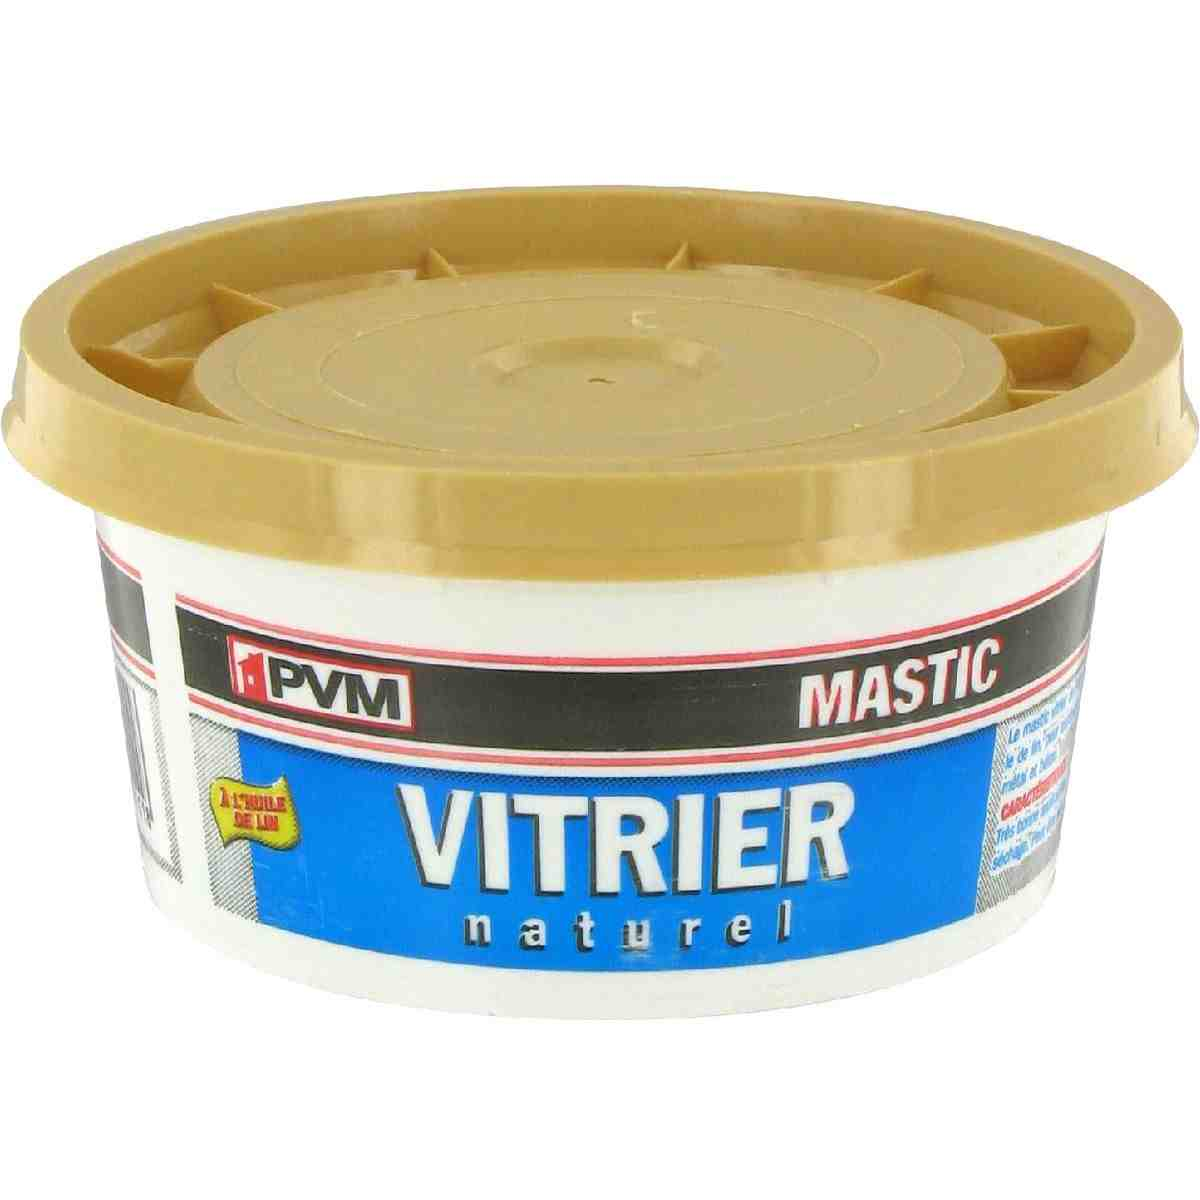 mastic vitrier pvm naturel pot 500 g de mastic vitrier 1064967 mon magasin g n ral. Black Bedroom Furniture Sets. Home Design Ideas